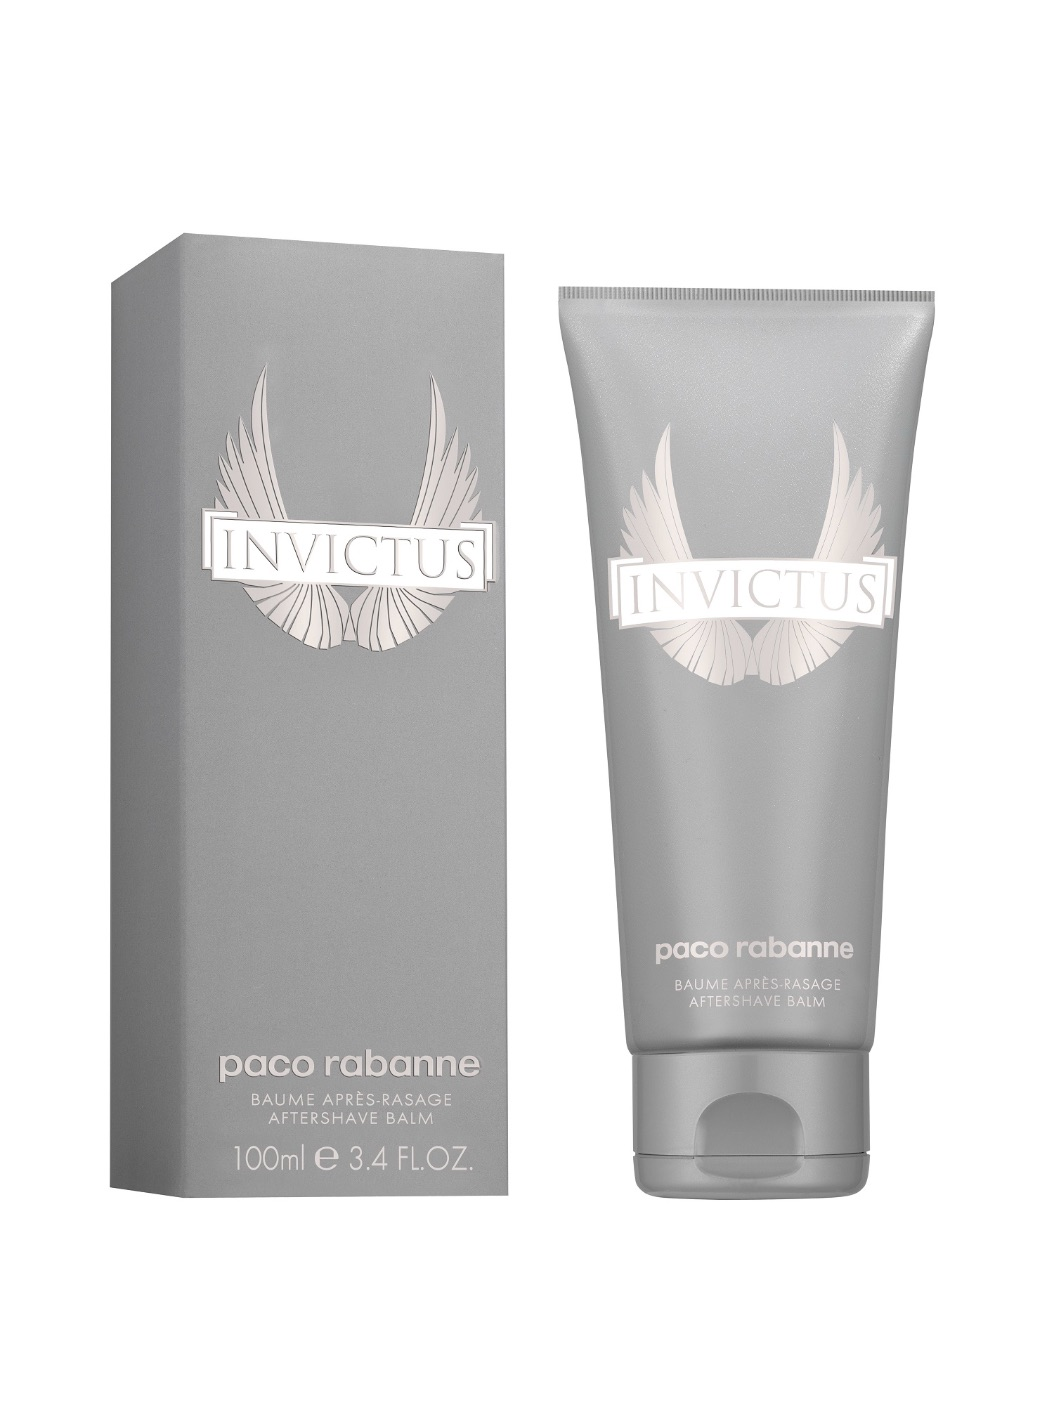 Paco Rabanne Invictus Aftershave Balm 100ml